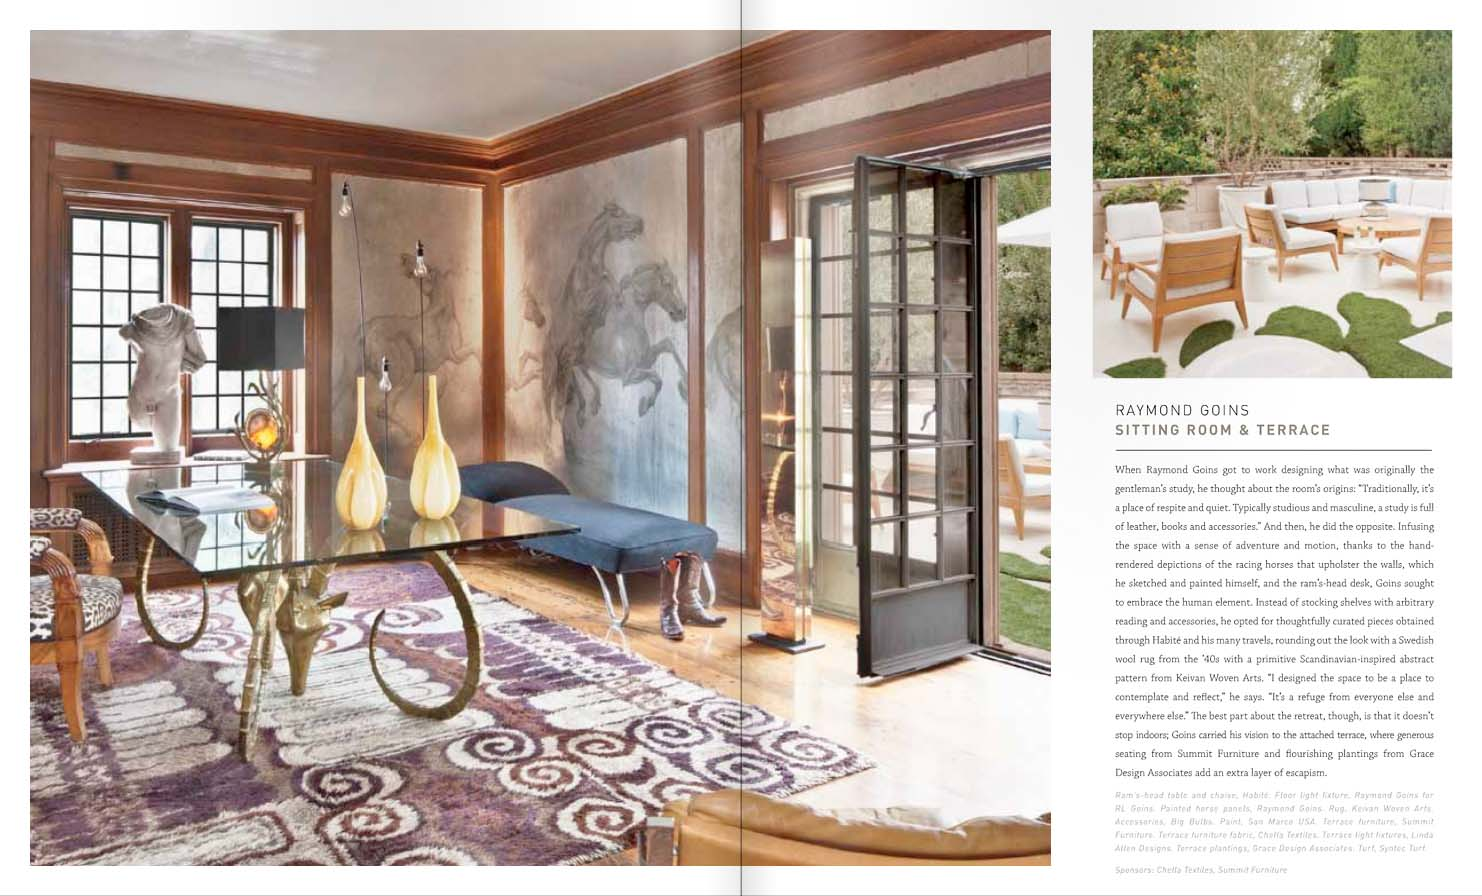 Paint strong as stone that is greystone mansion romabio for The greystone